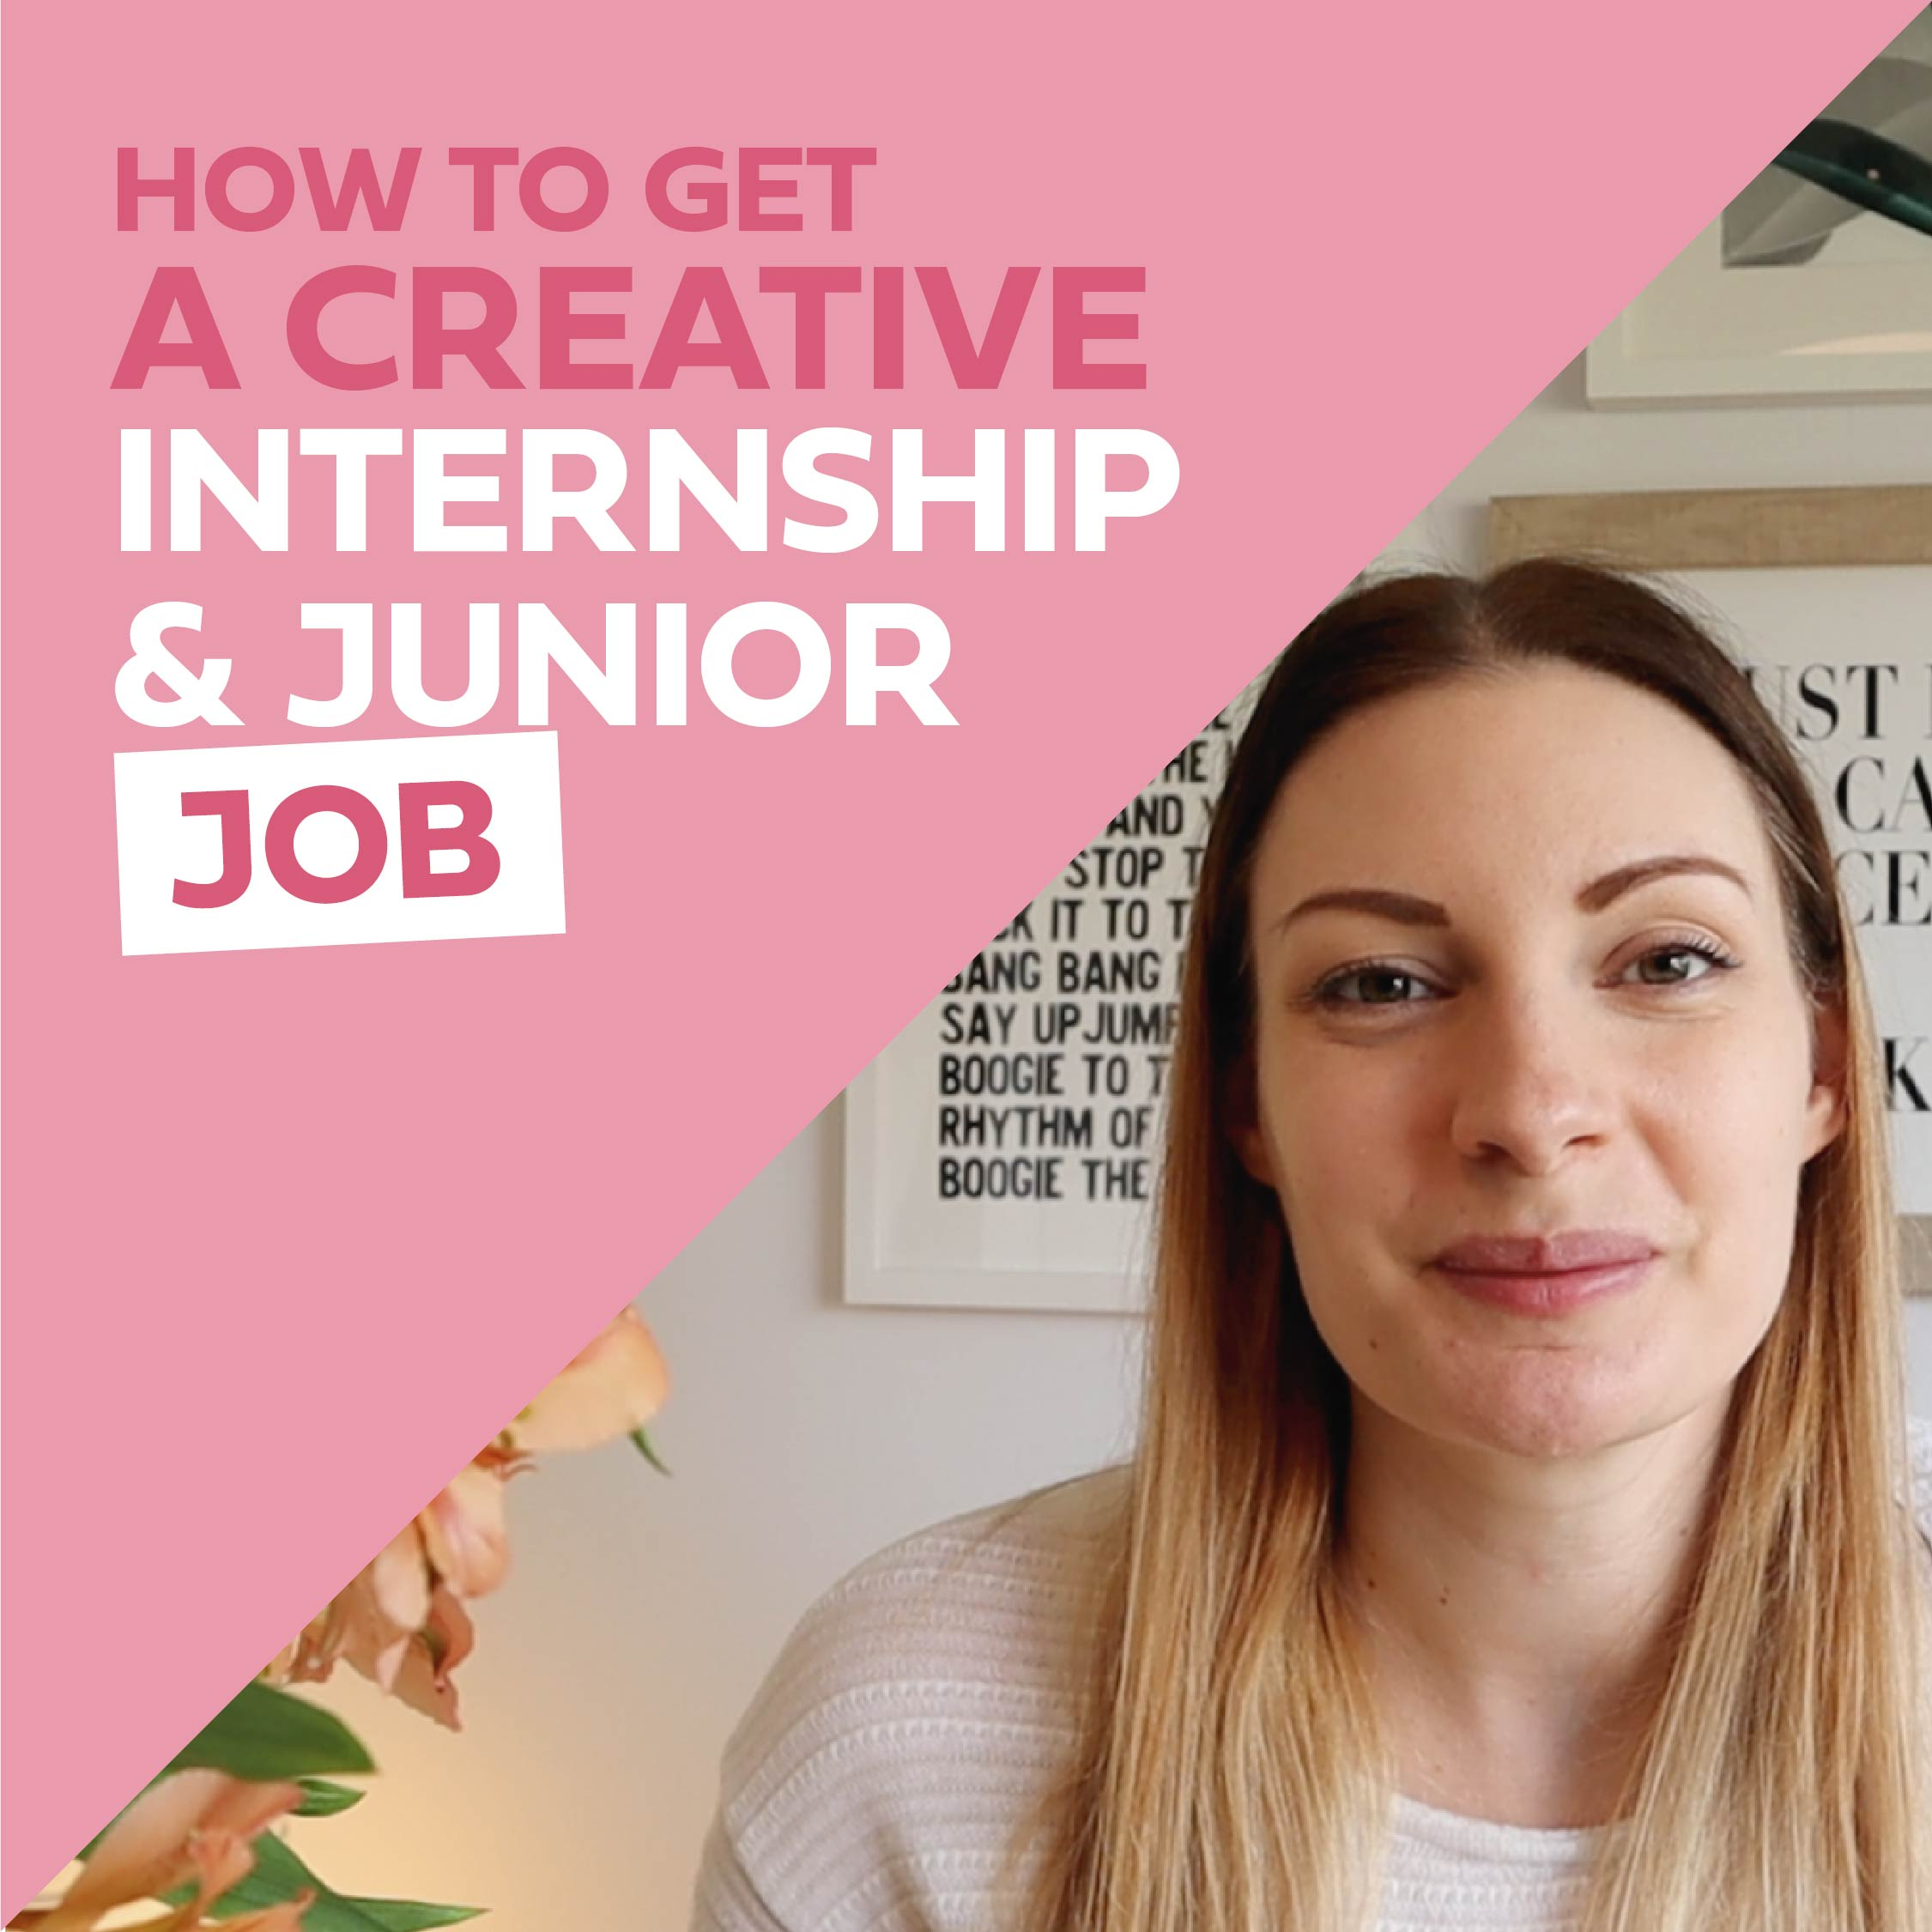 Image-tile-for-blog-post-how-to-get-a-creative-internship-and-junior-job